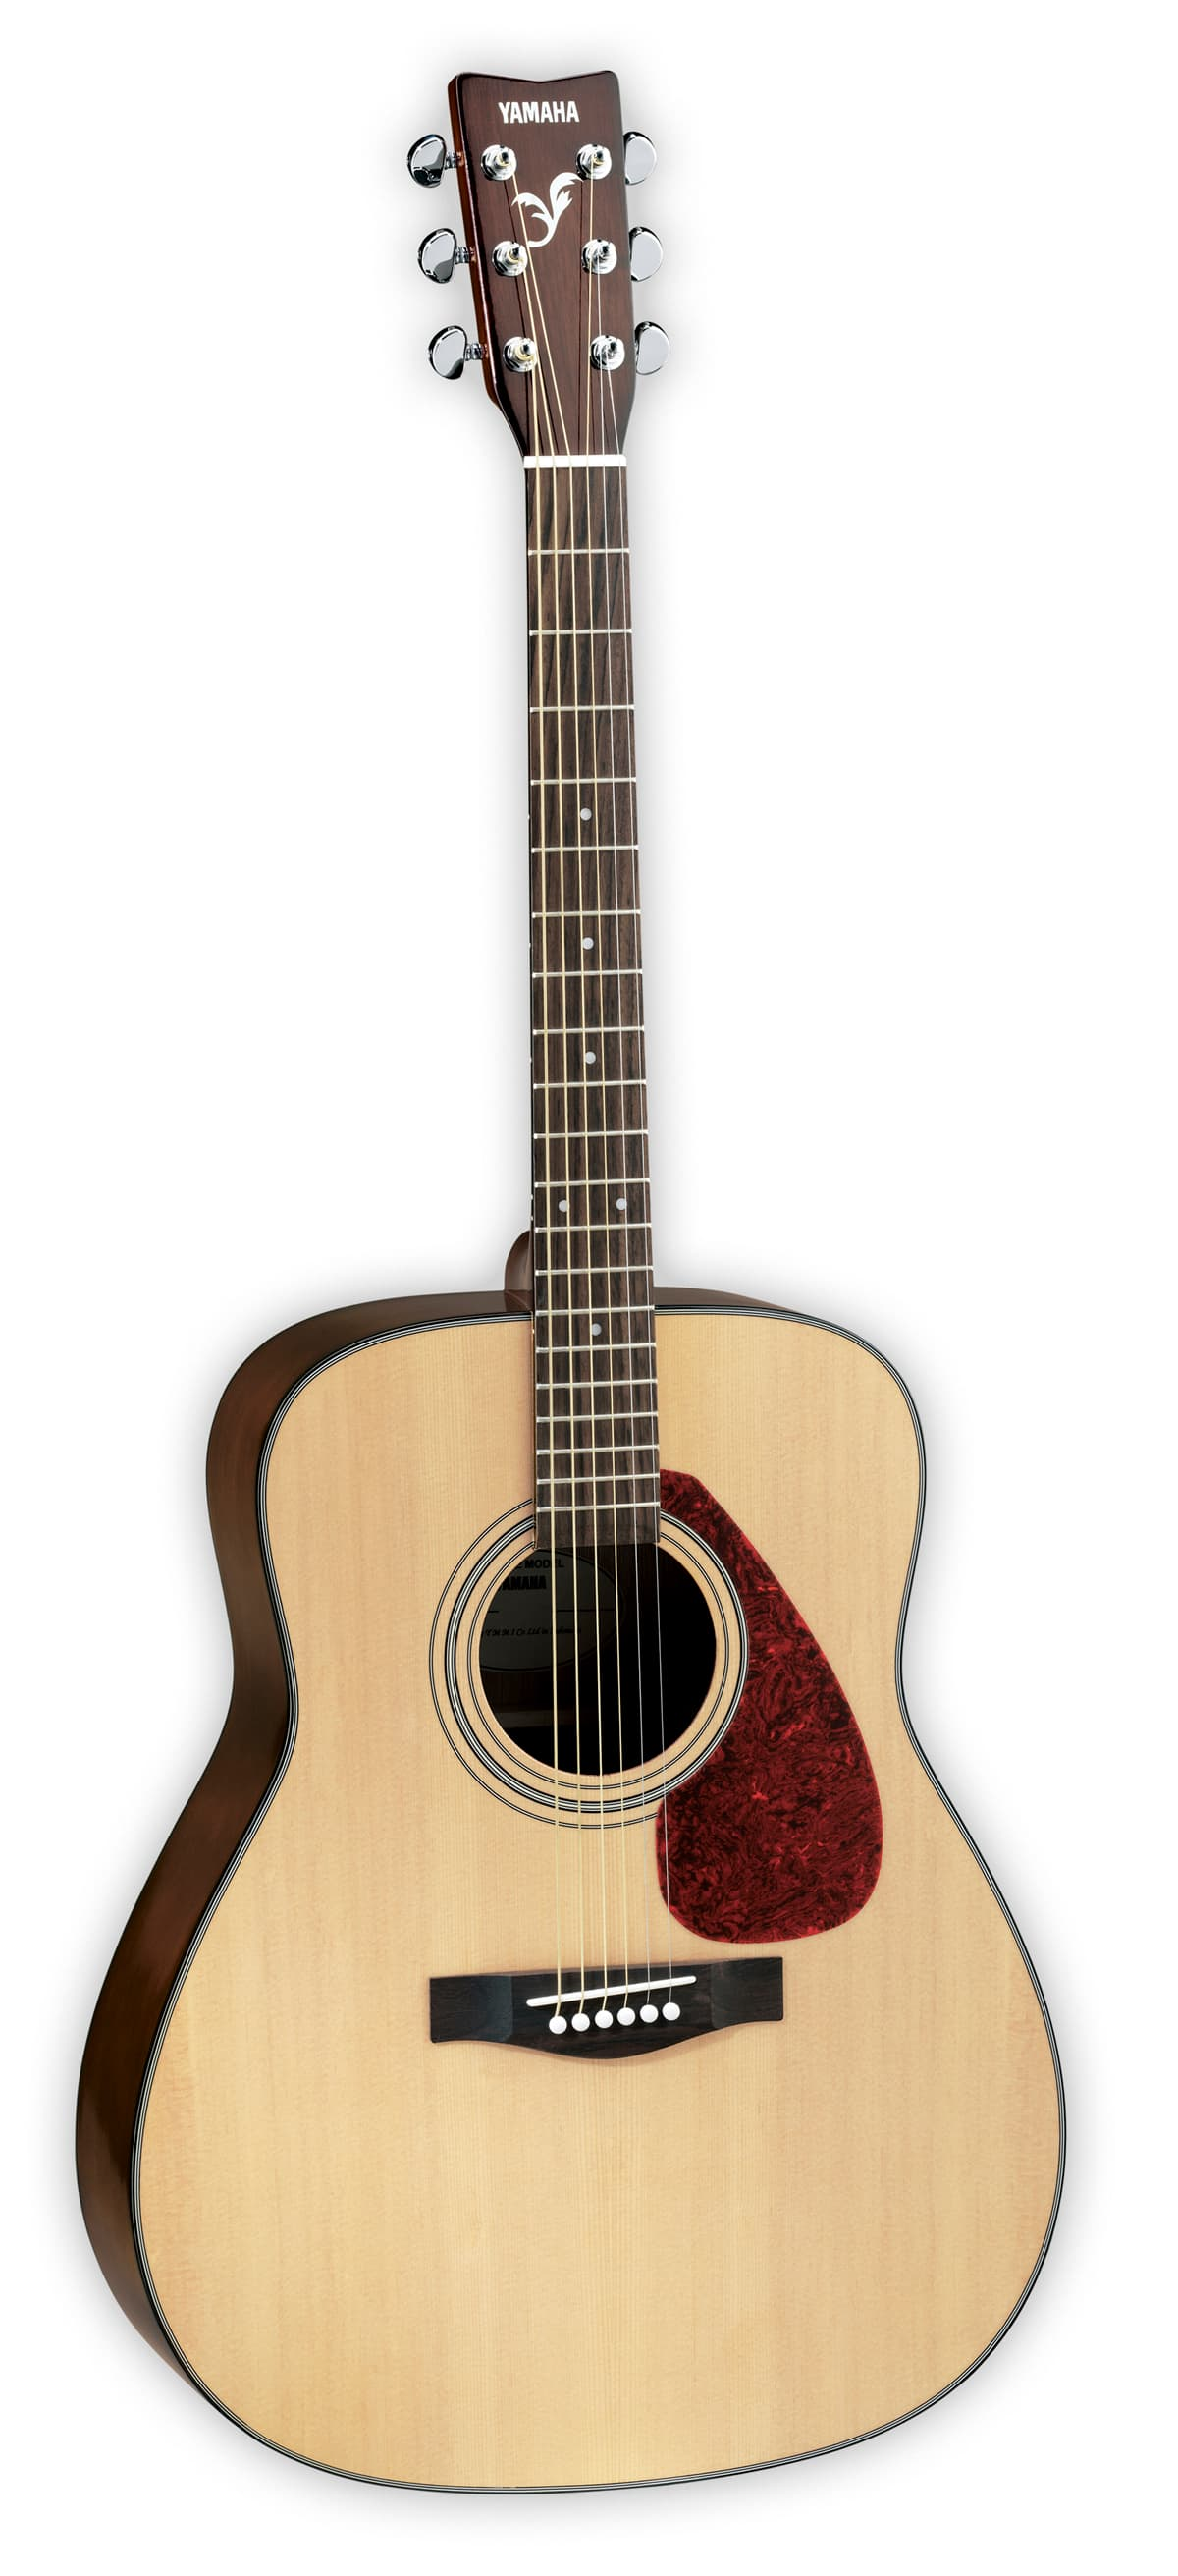 Yamaha f325d dreadnought acoustic guitar natural reverb for Yamaha acoustic bass guitar